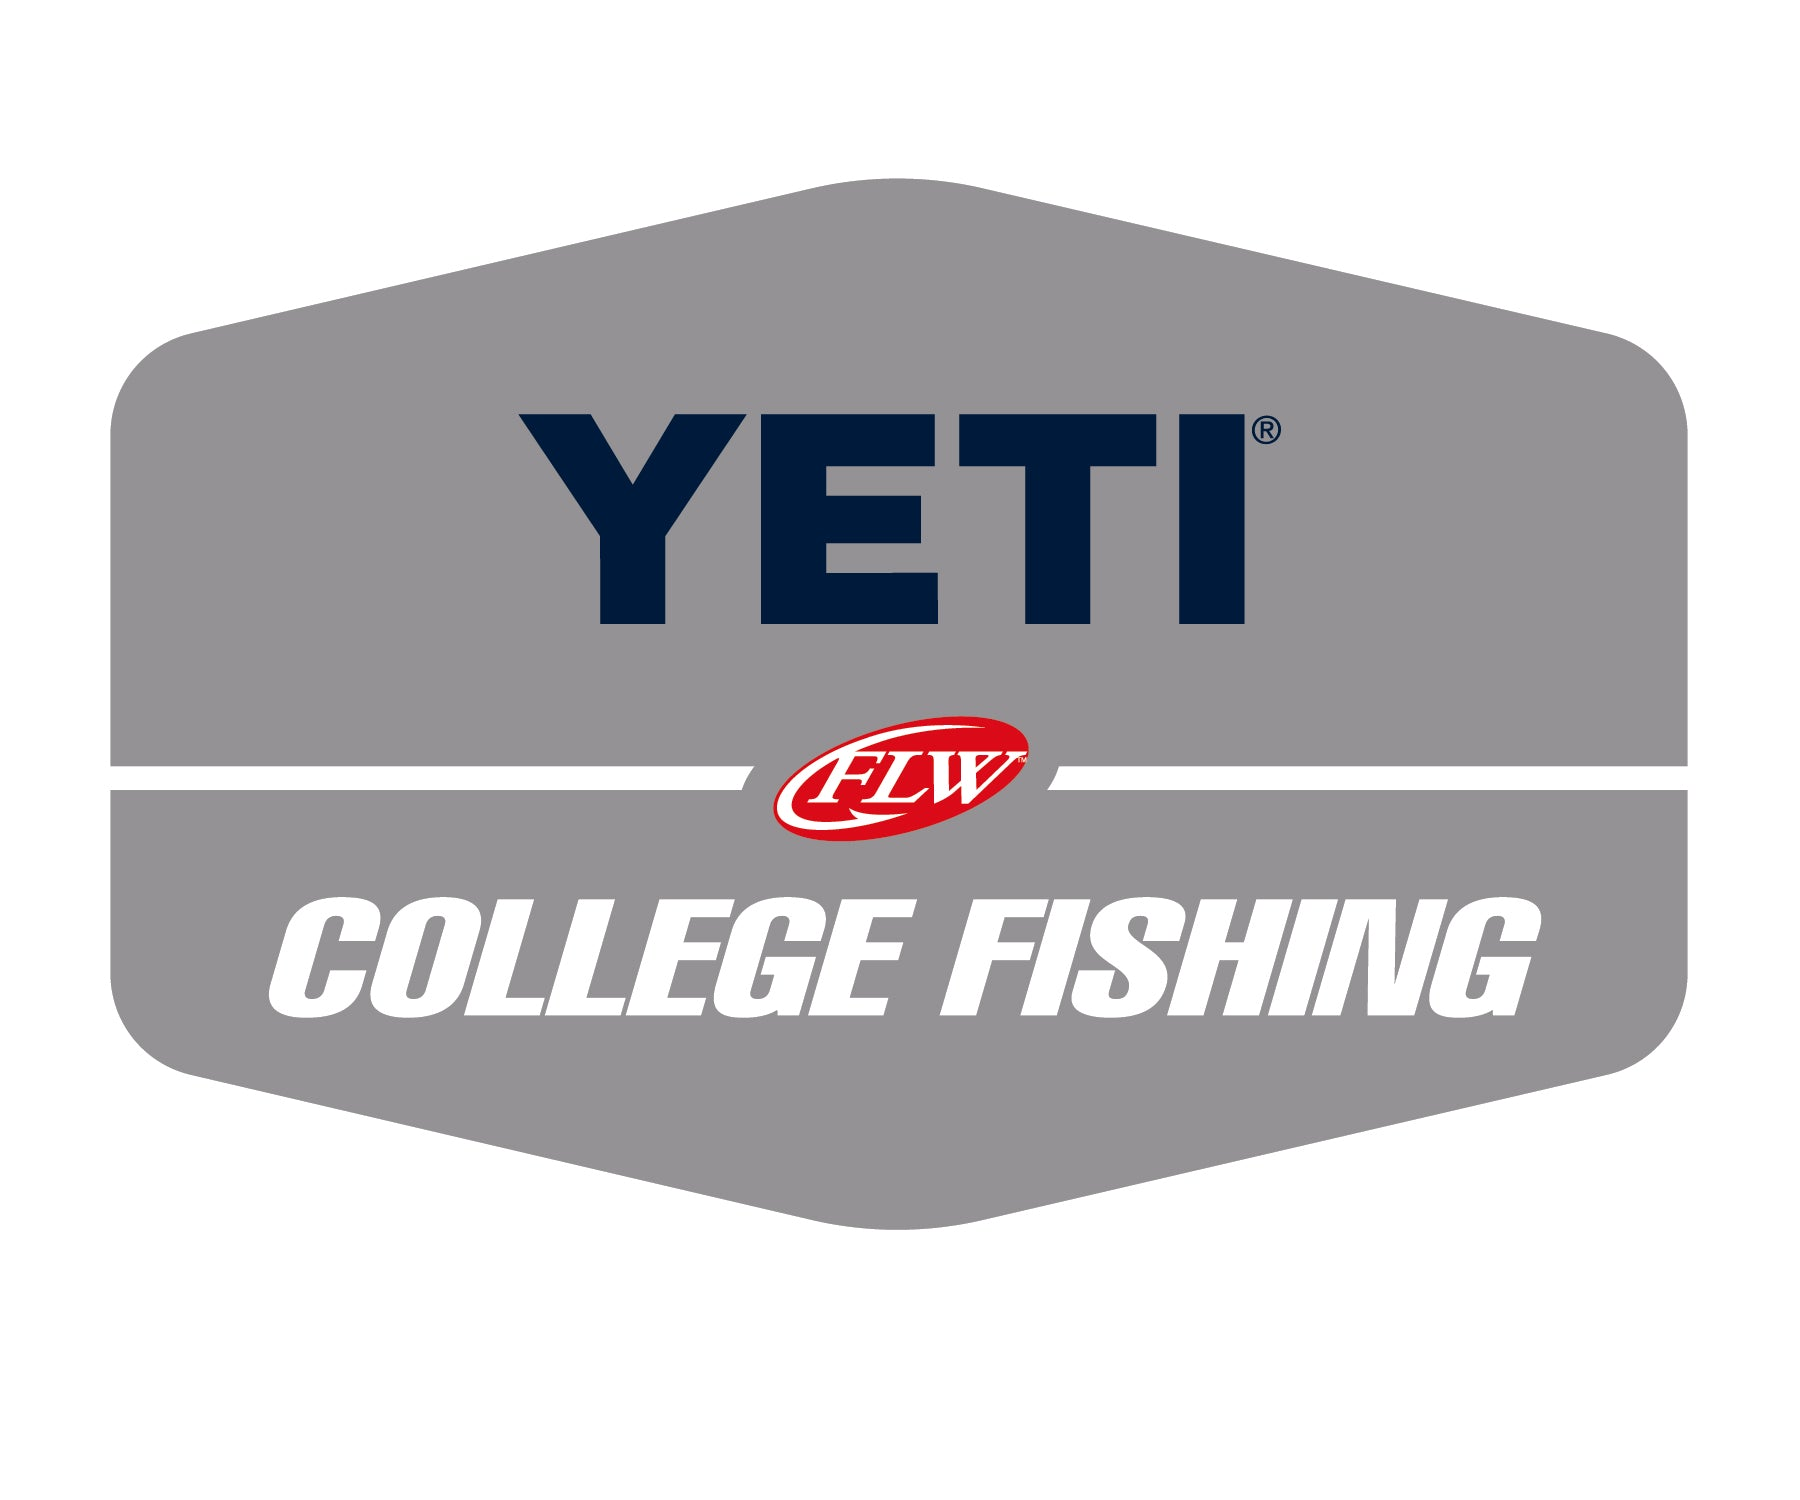 2011 College Fishing DVD